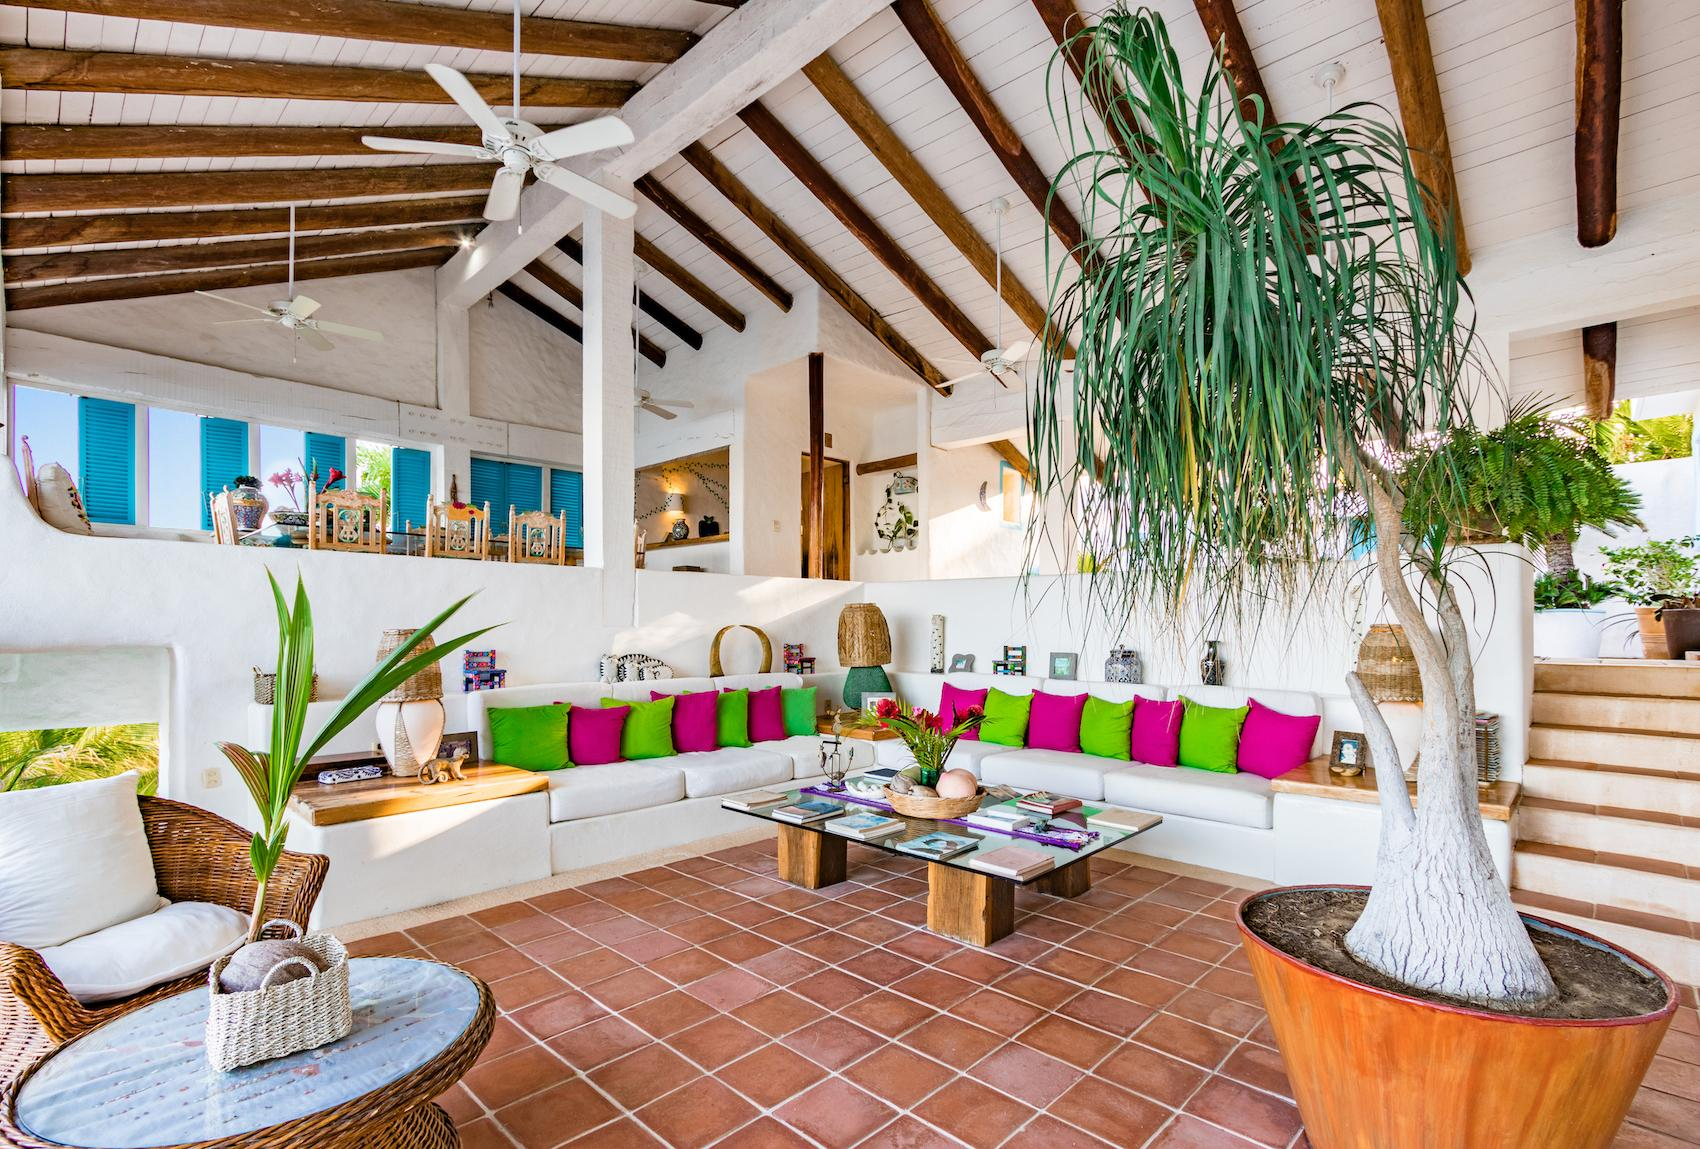 Property Image 2 - Artfully Designed with Traditional Mexican Influences